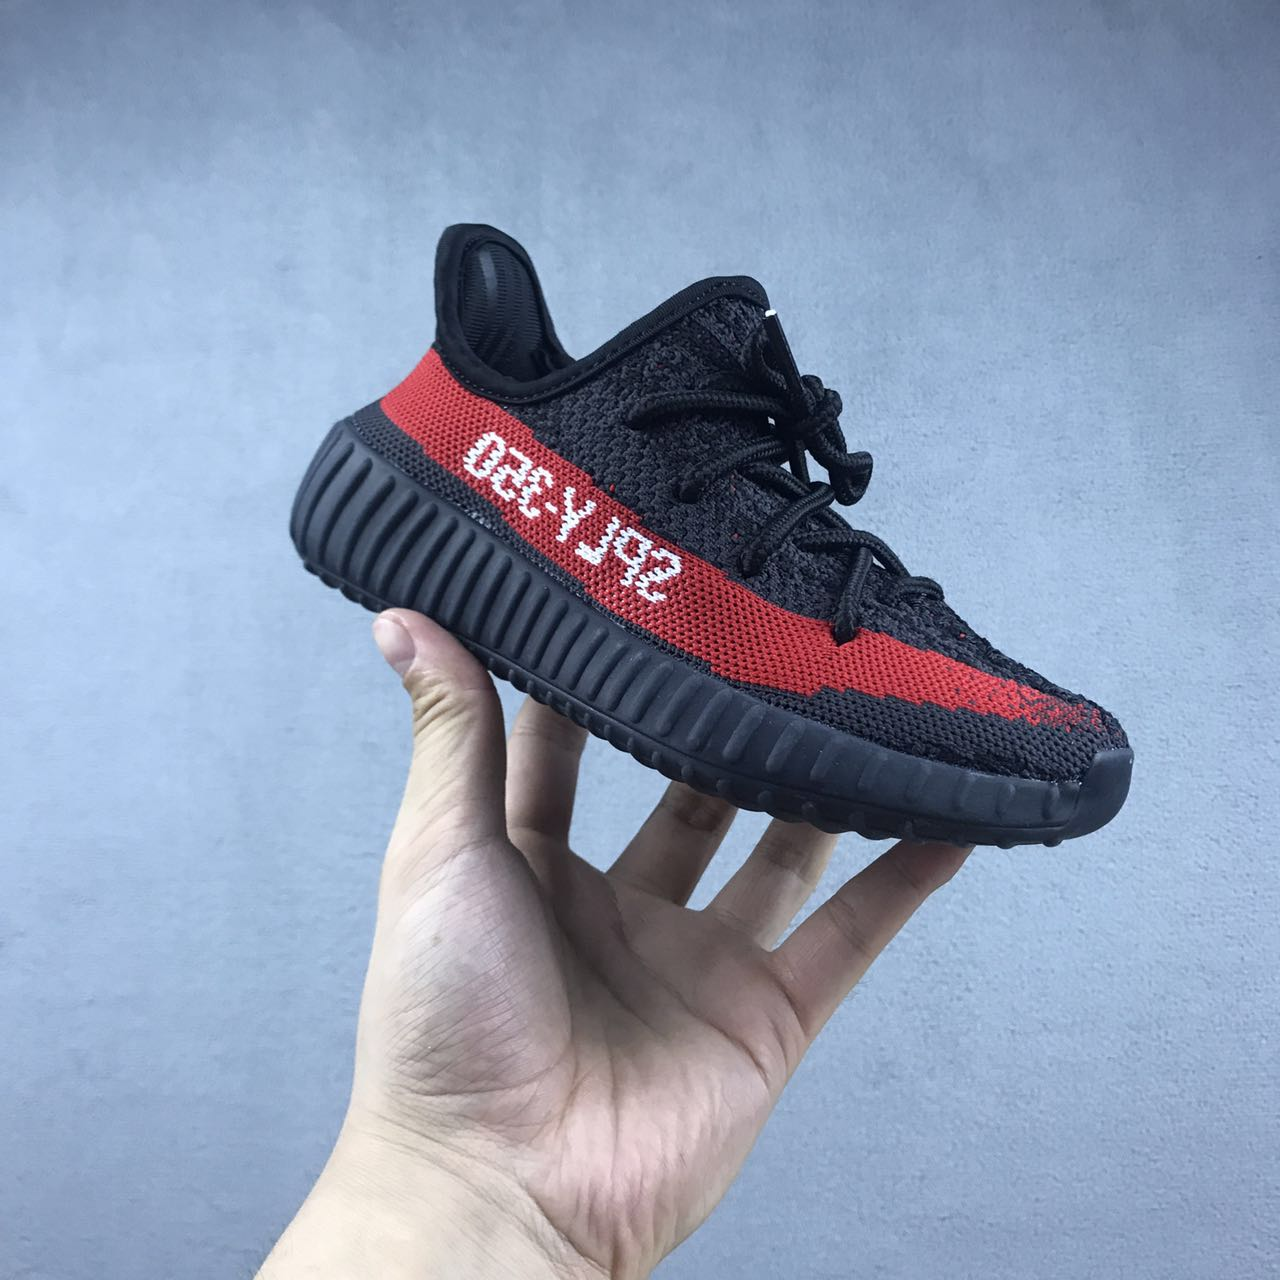 New Kids Yeezy Boost 350 black-red